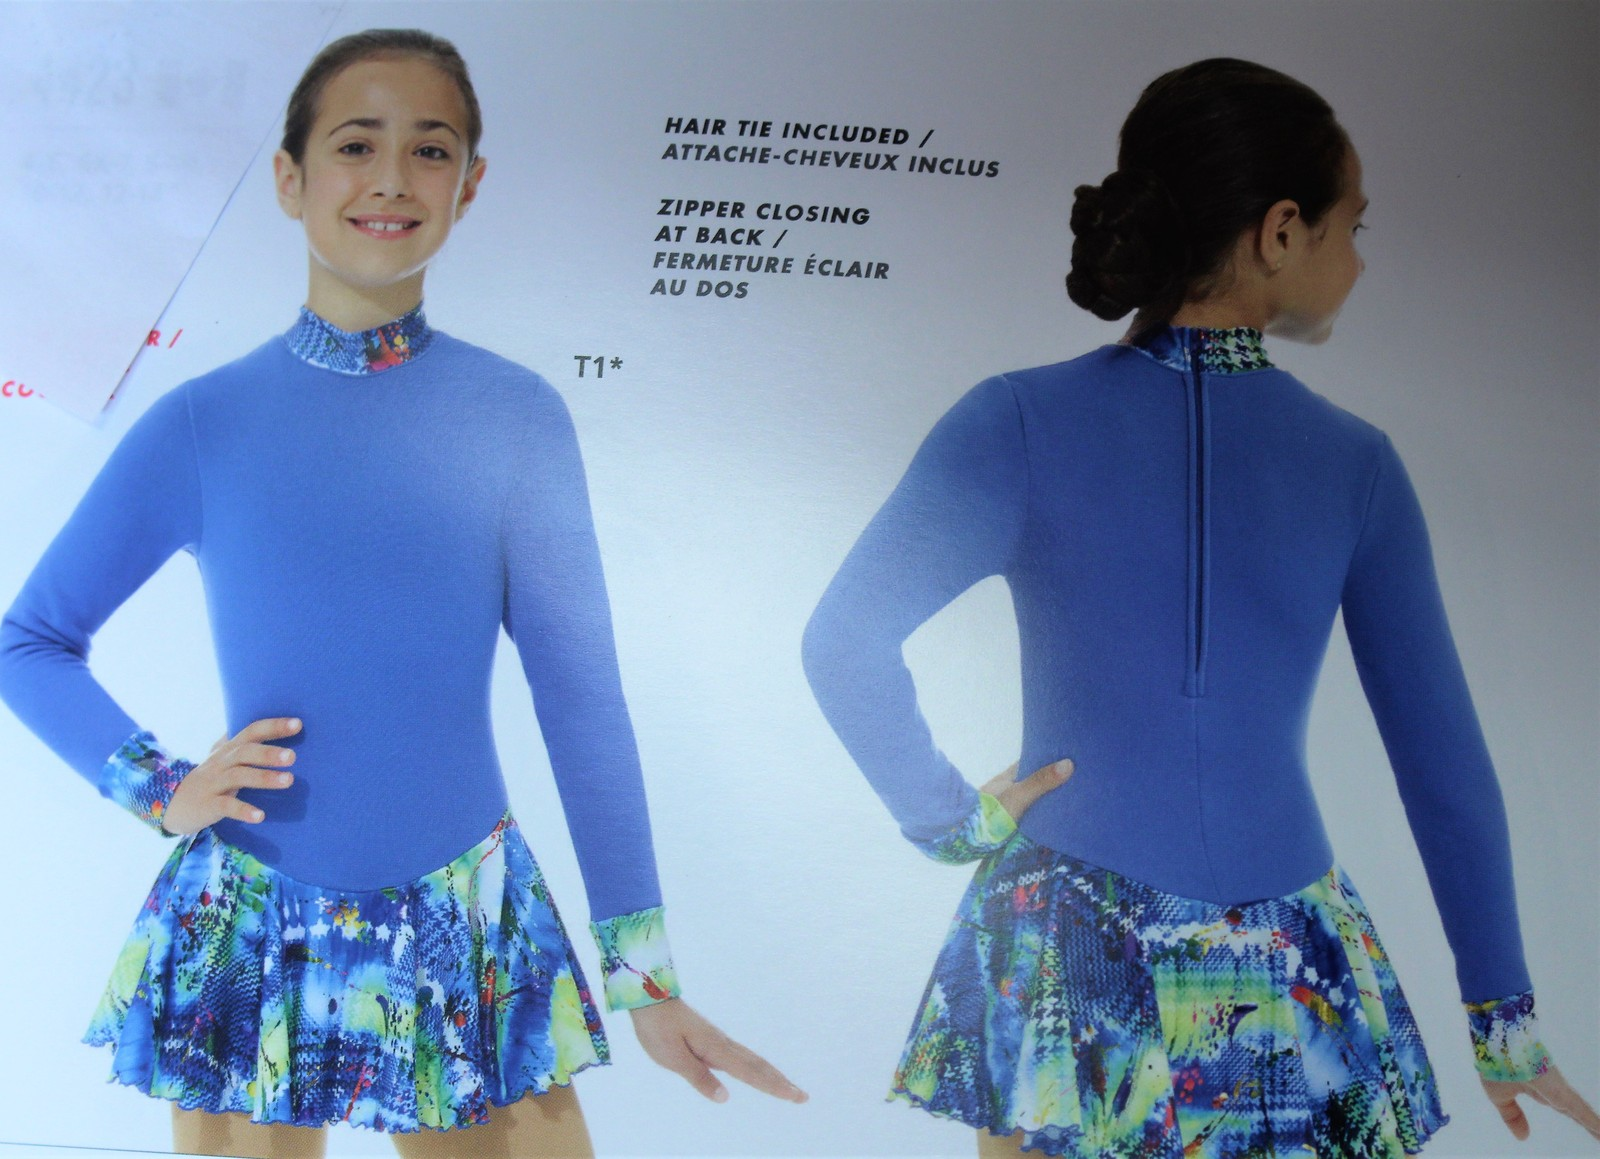 Primary image for Mondor Model 4423 Polartec Skating Dress 2018- Techno Blue Dye Size 10-12